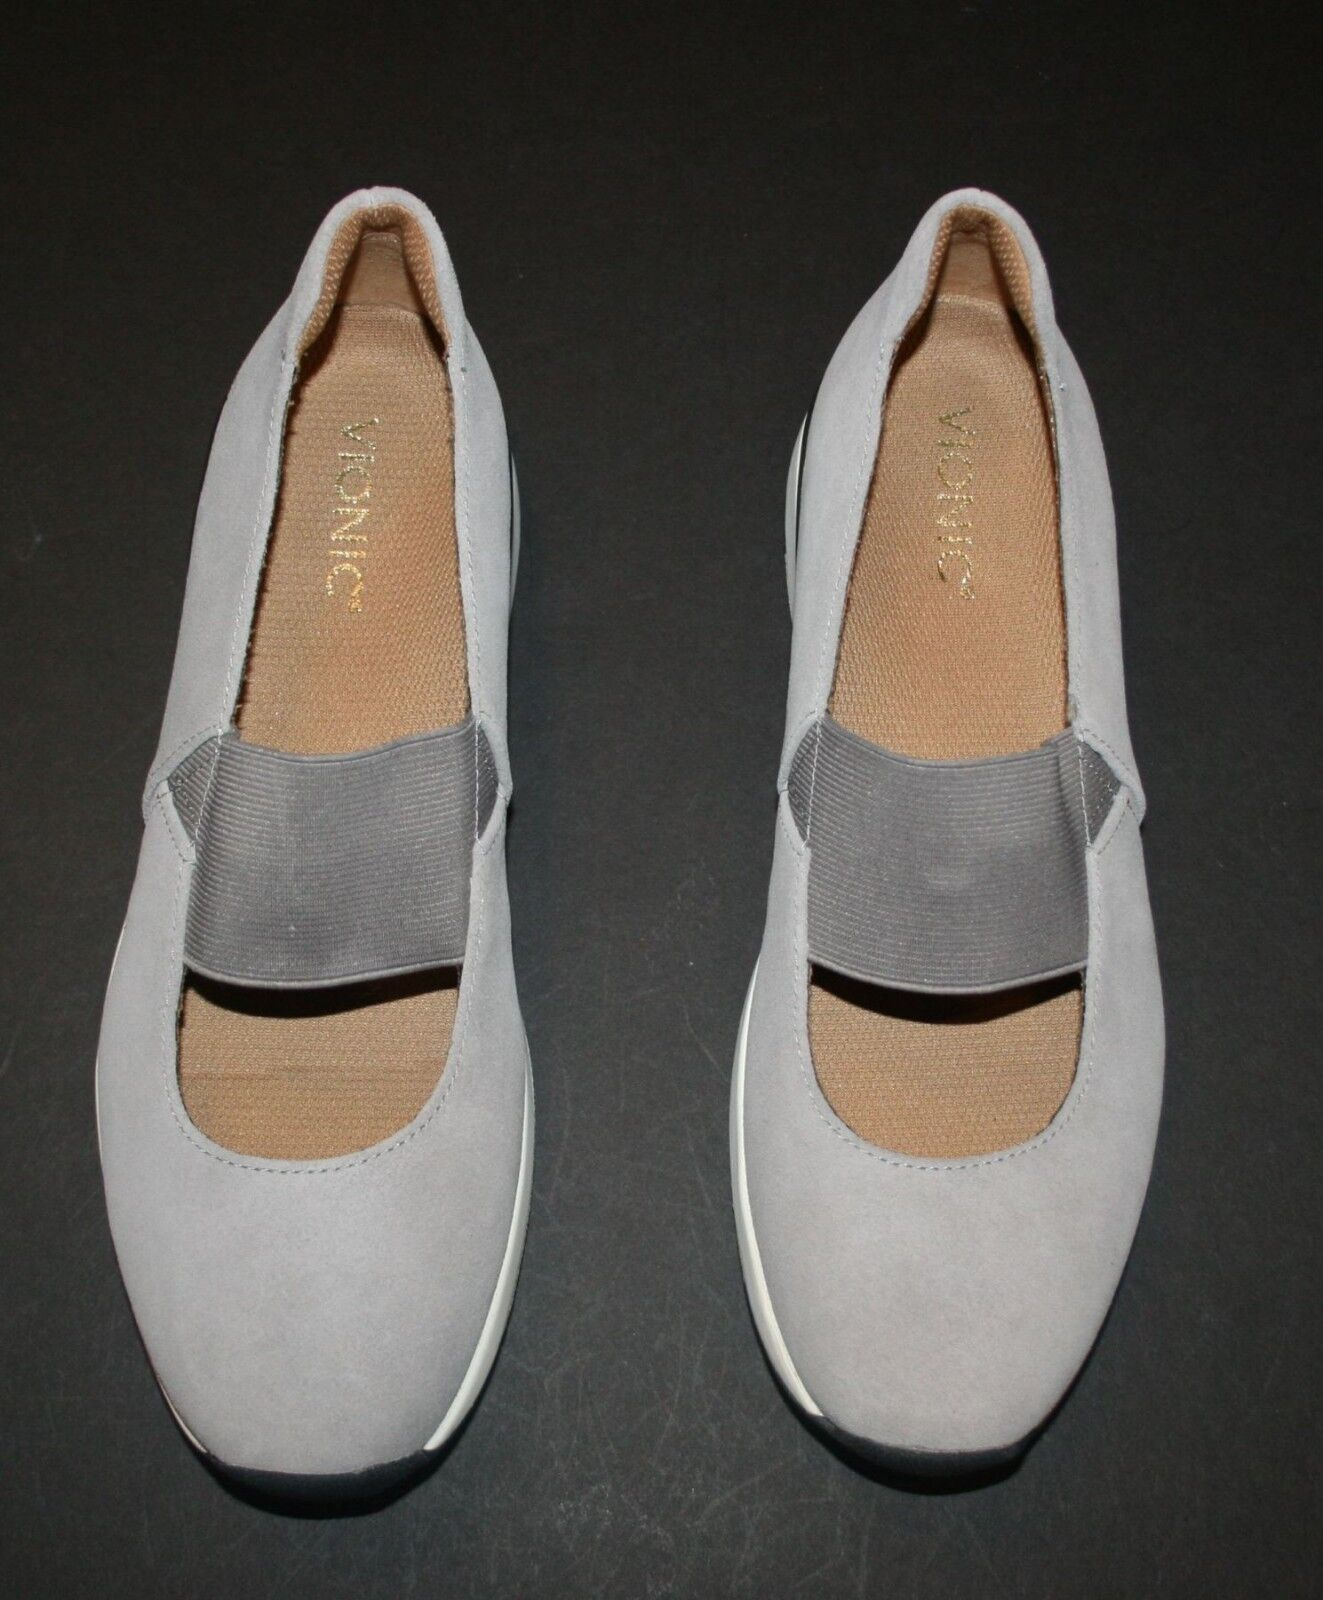 New Vionic Women's Cosmic Cadee Mary-Jane Light Grey 10 M US NIB Slip On